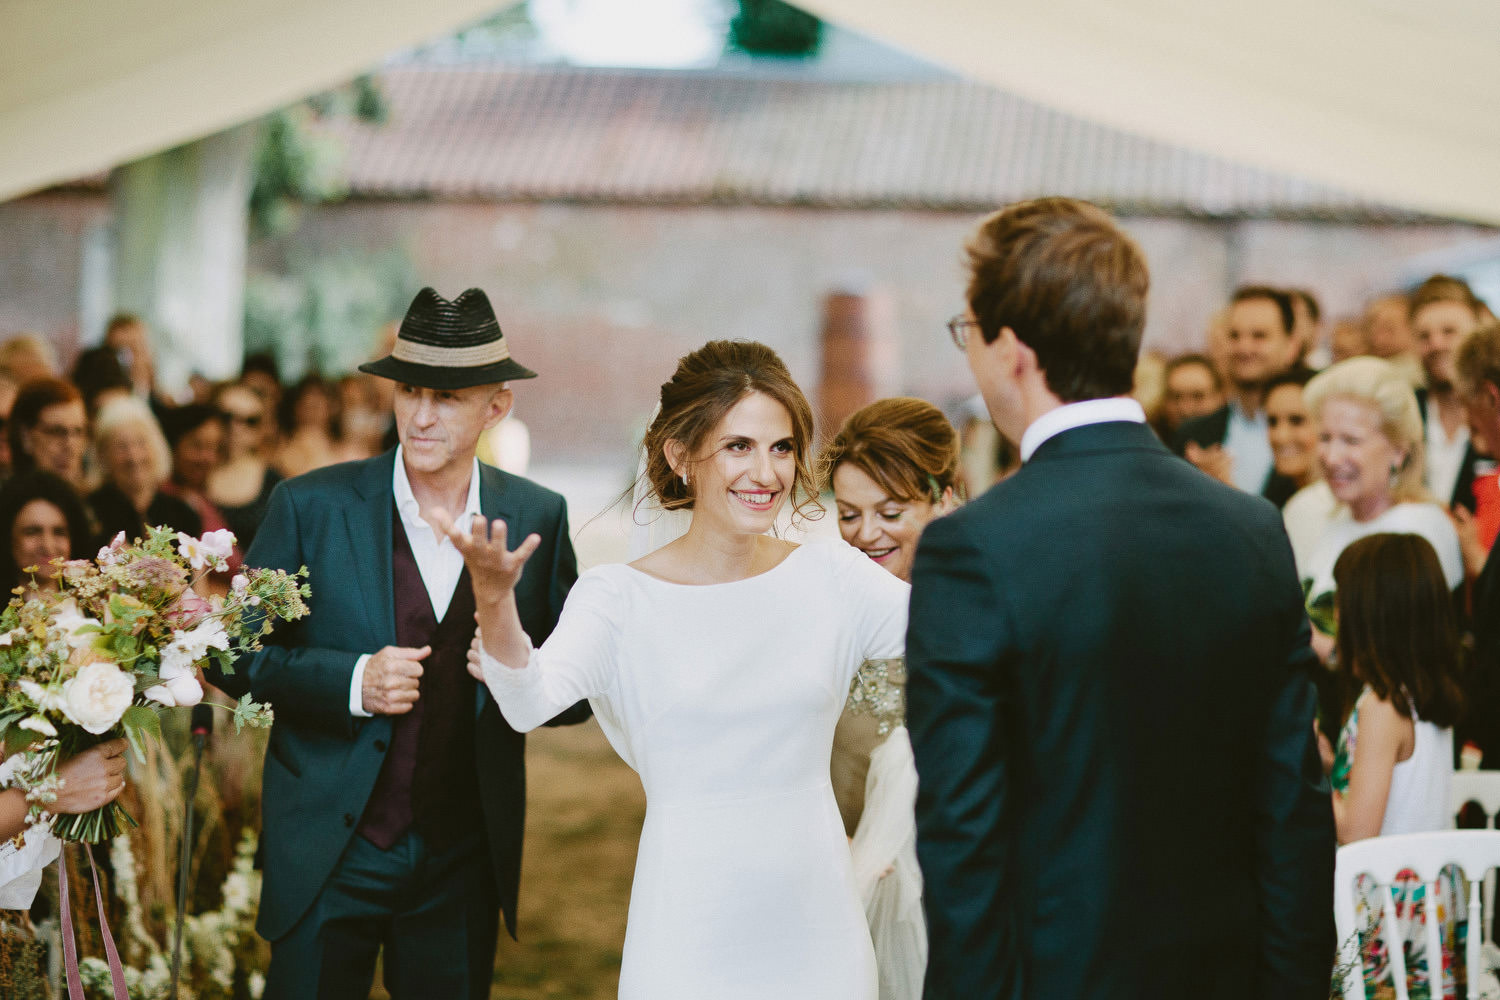 Bride greets groom at the front of a wedding ceremony